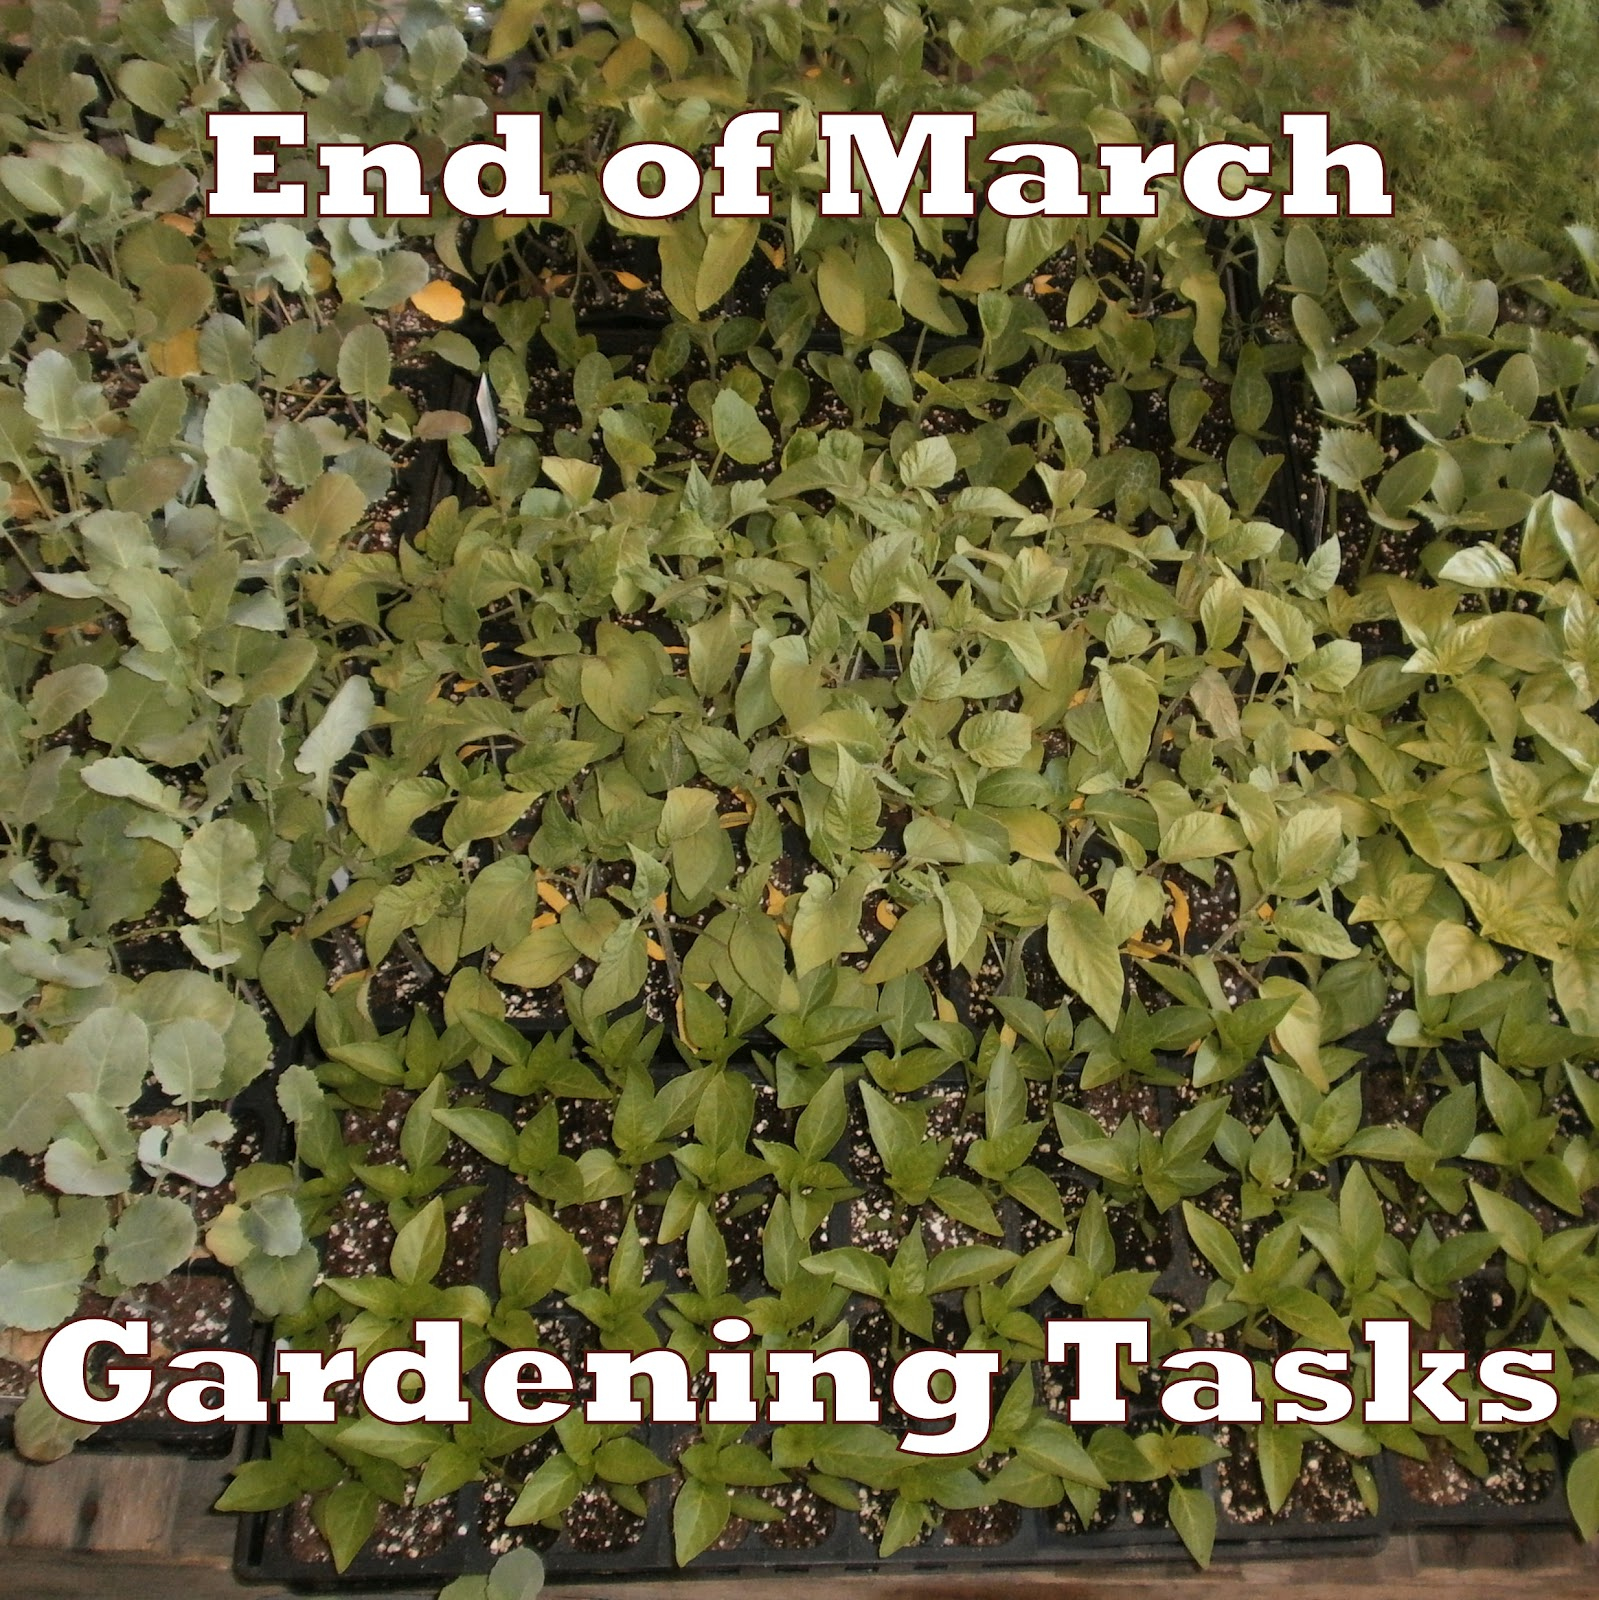 Essential March Gardening Tasks